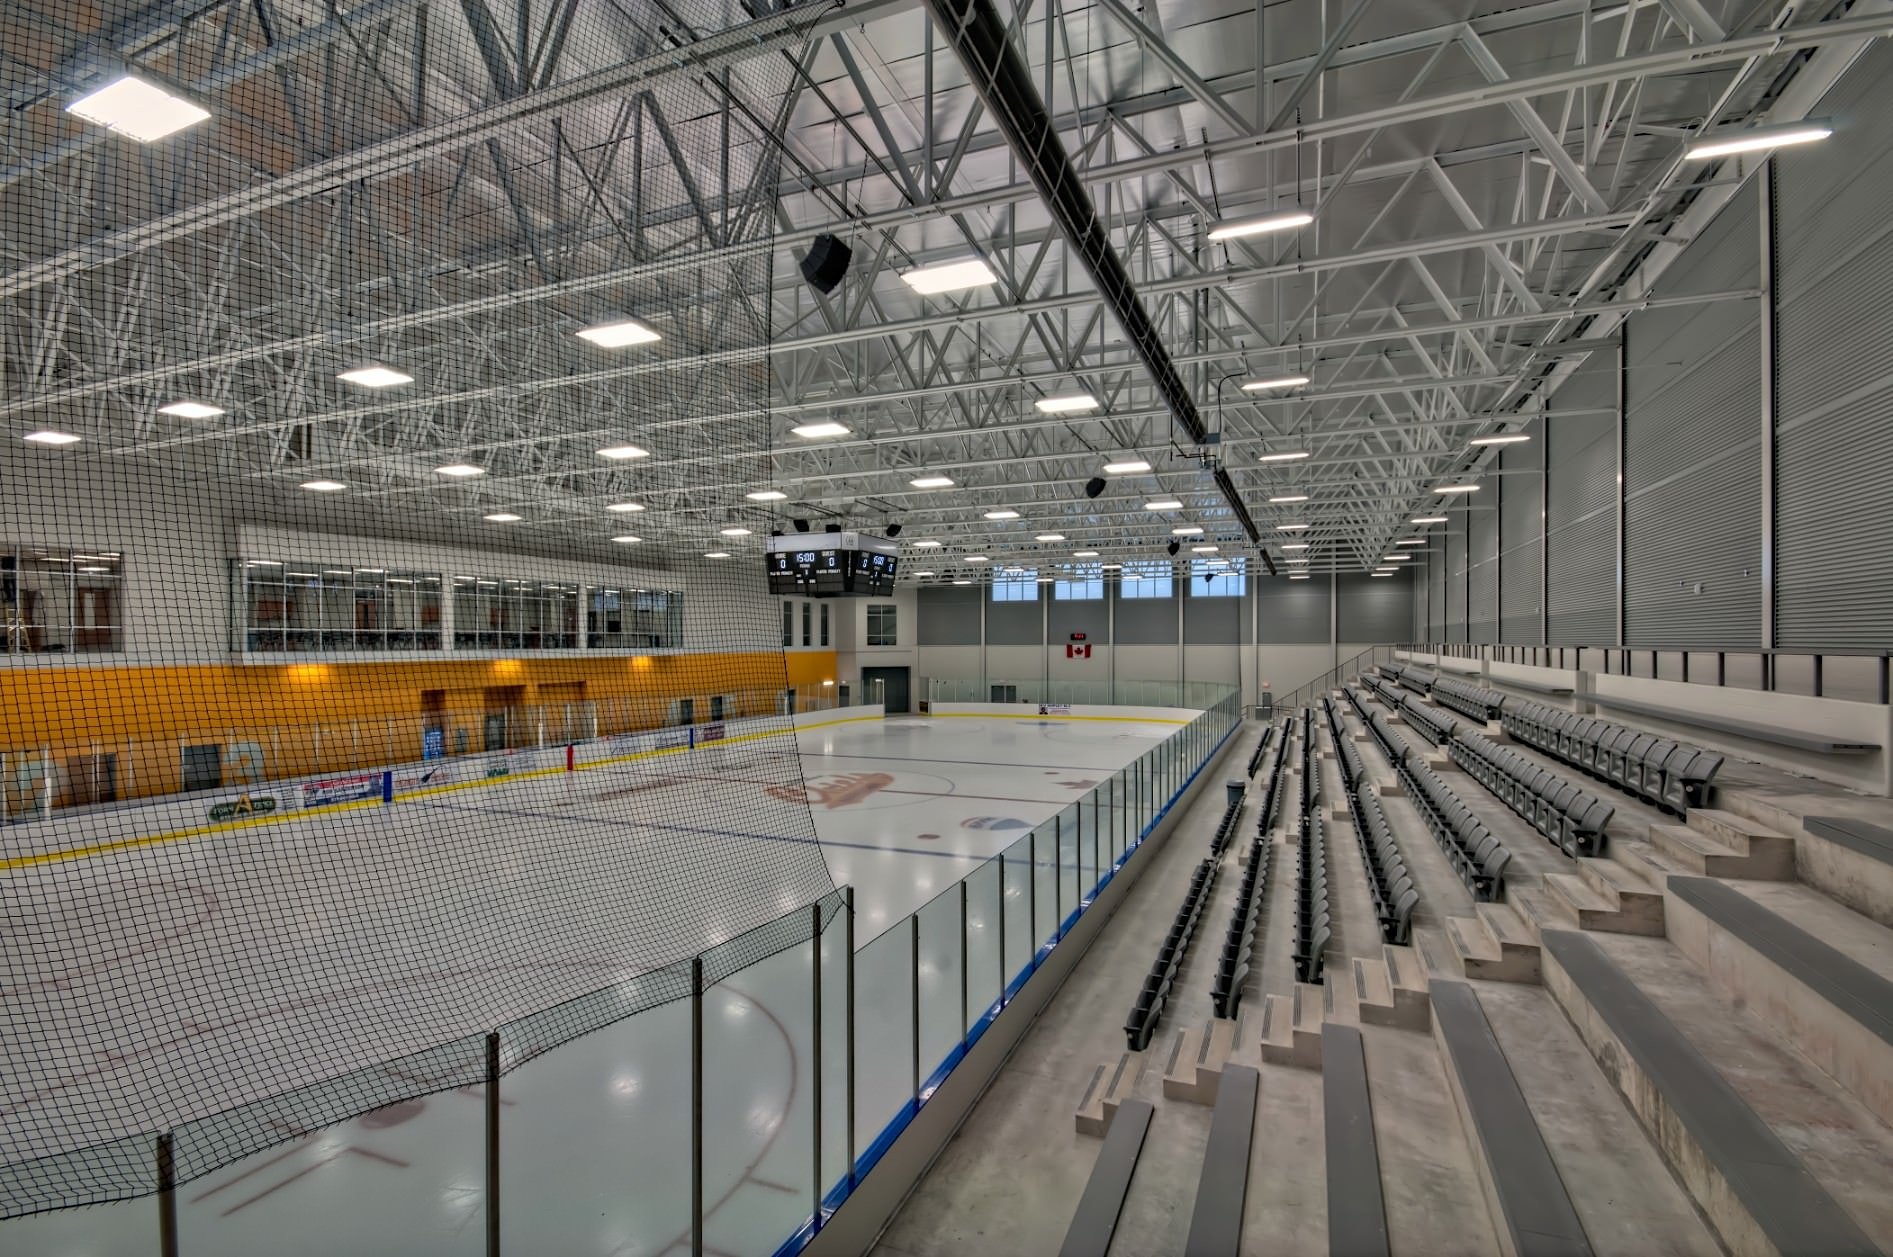 Interior architectural photography of skating rink area at the Komoka Wellness Centre